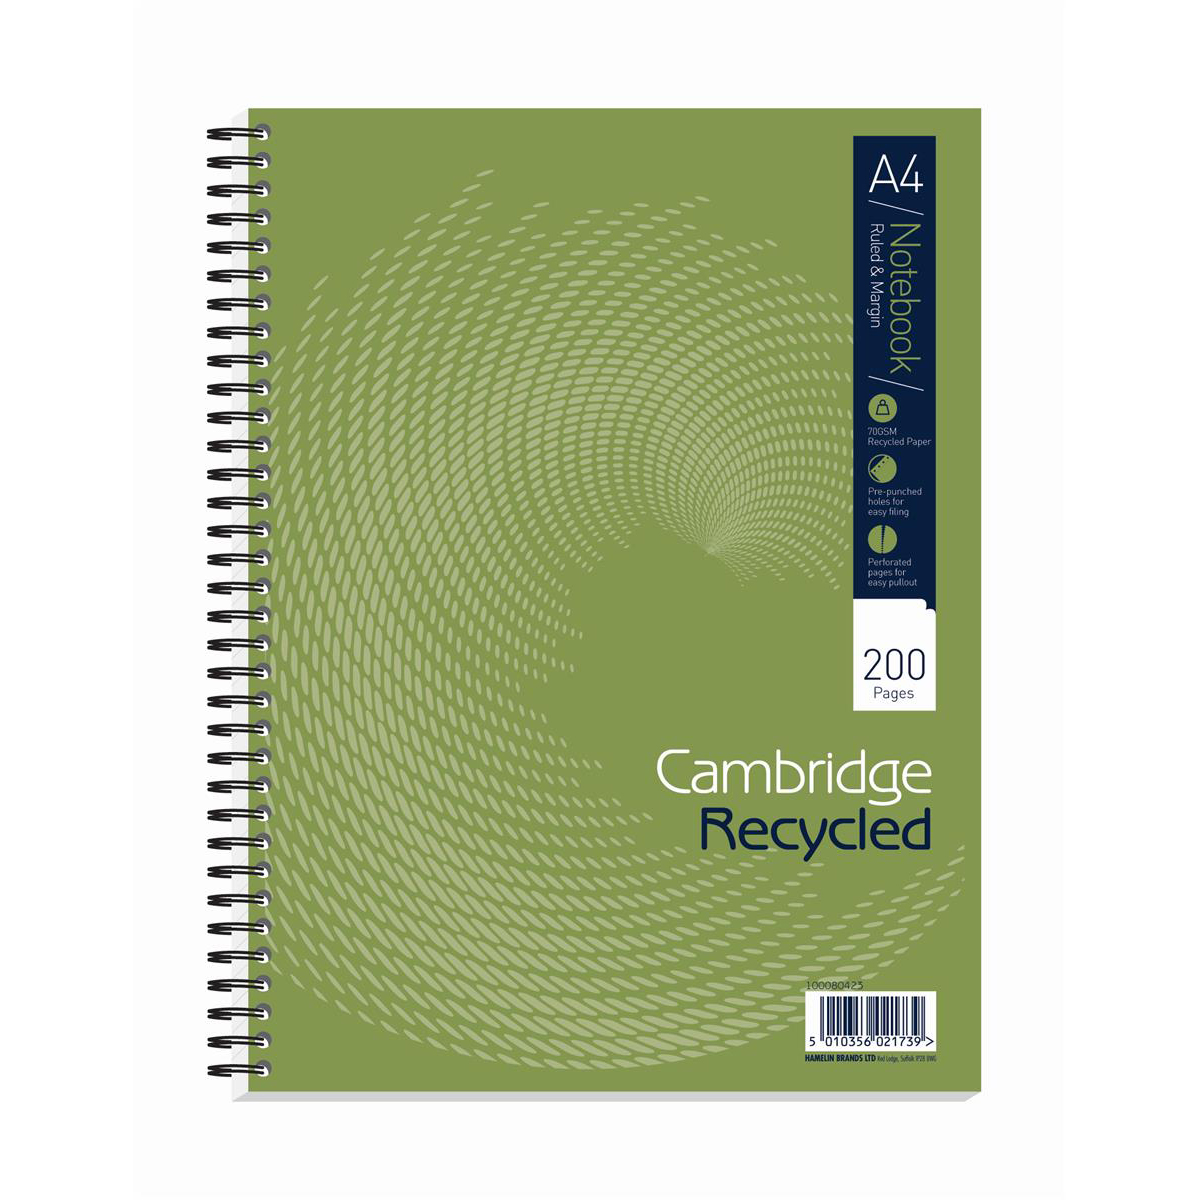 Cambridge Recycled Nbk Wirebnd 70gsm Ruled Margin Perf Punched 4 Holes 200pp A4+ Ref 100080423 Pack 3